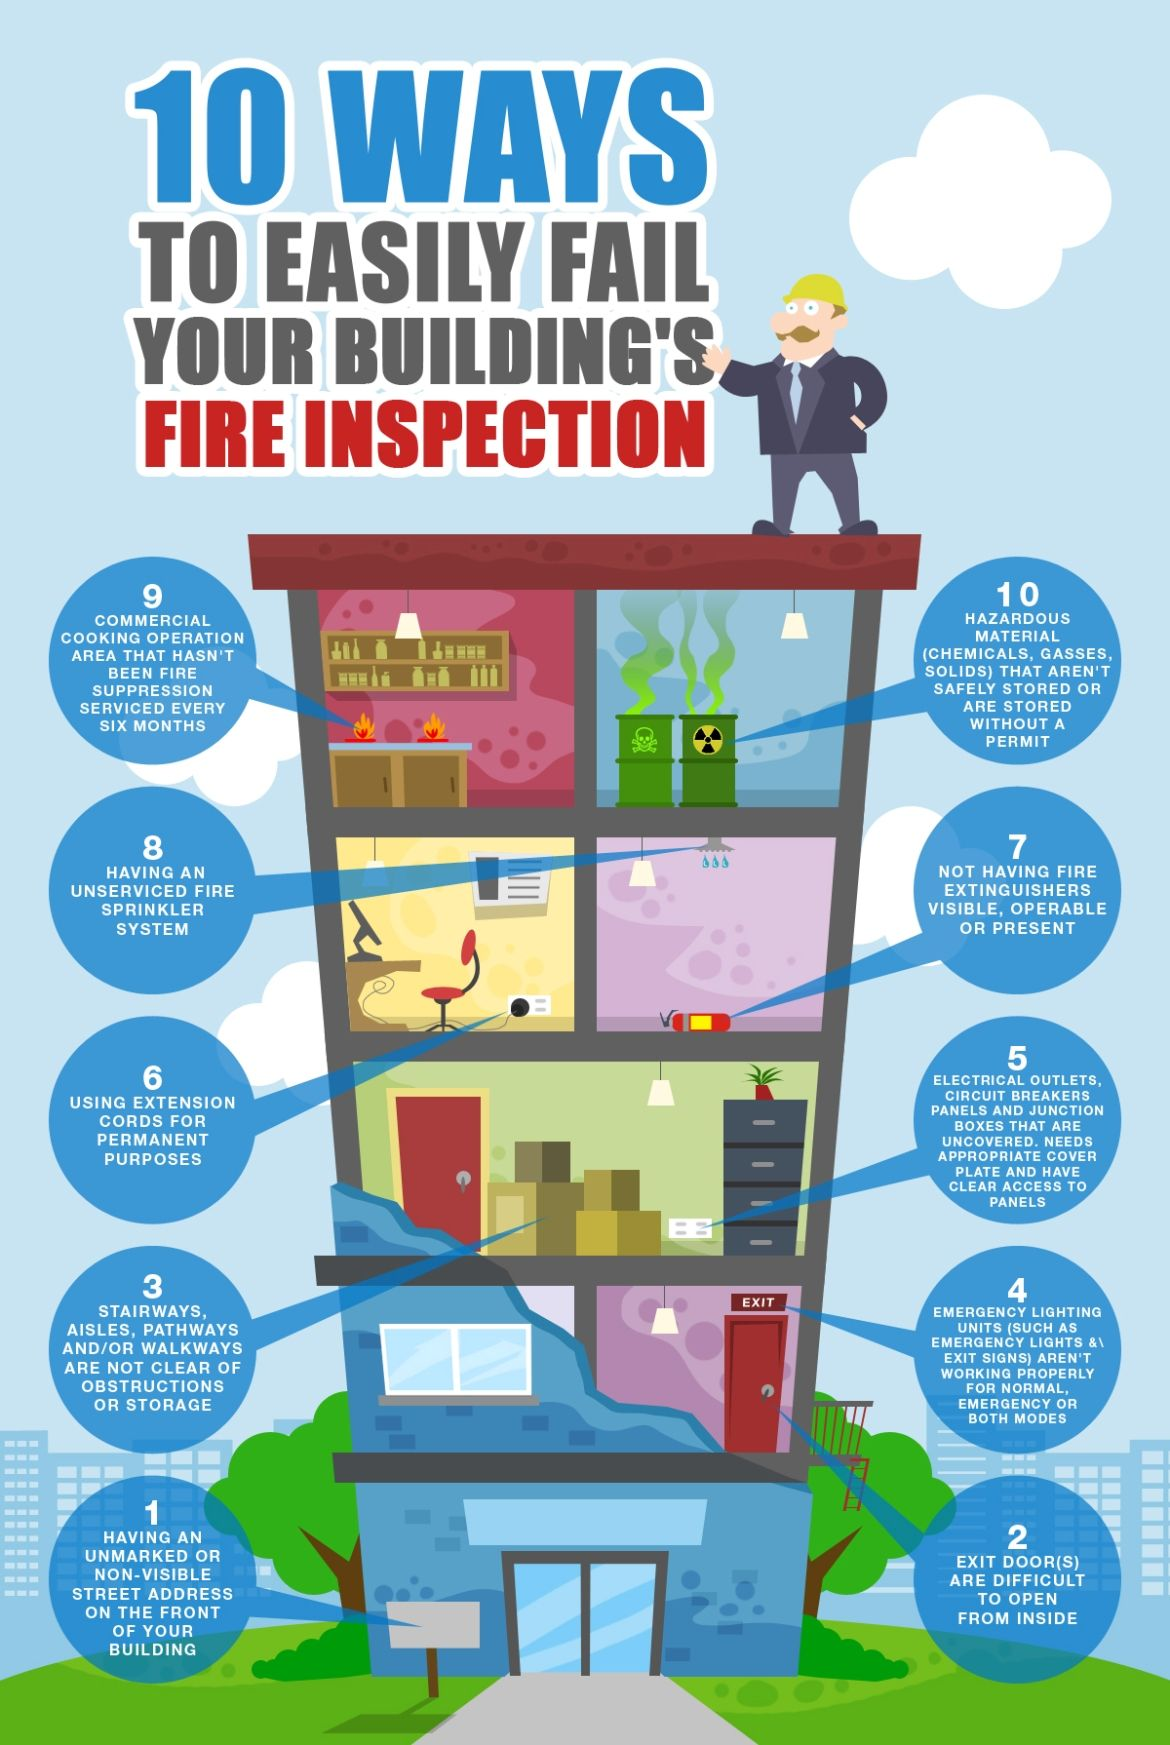 10 Ways to Easily Fail Your Building Fire Inspection